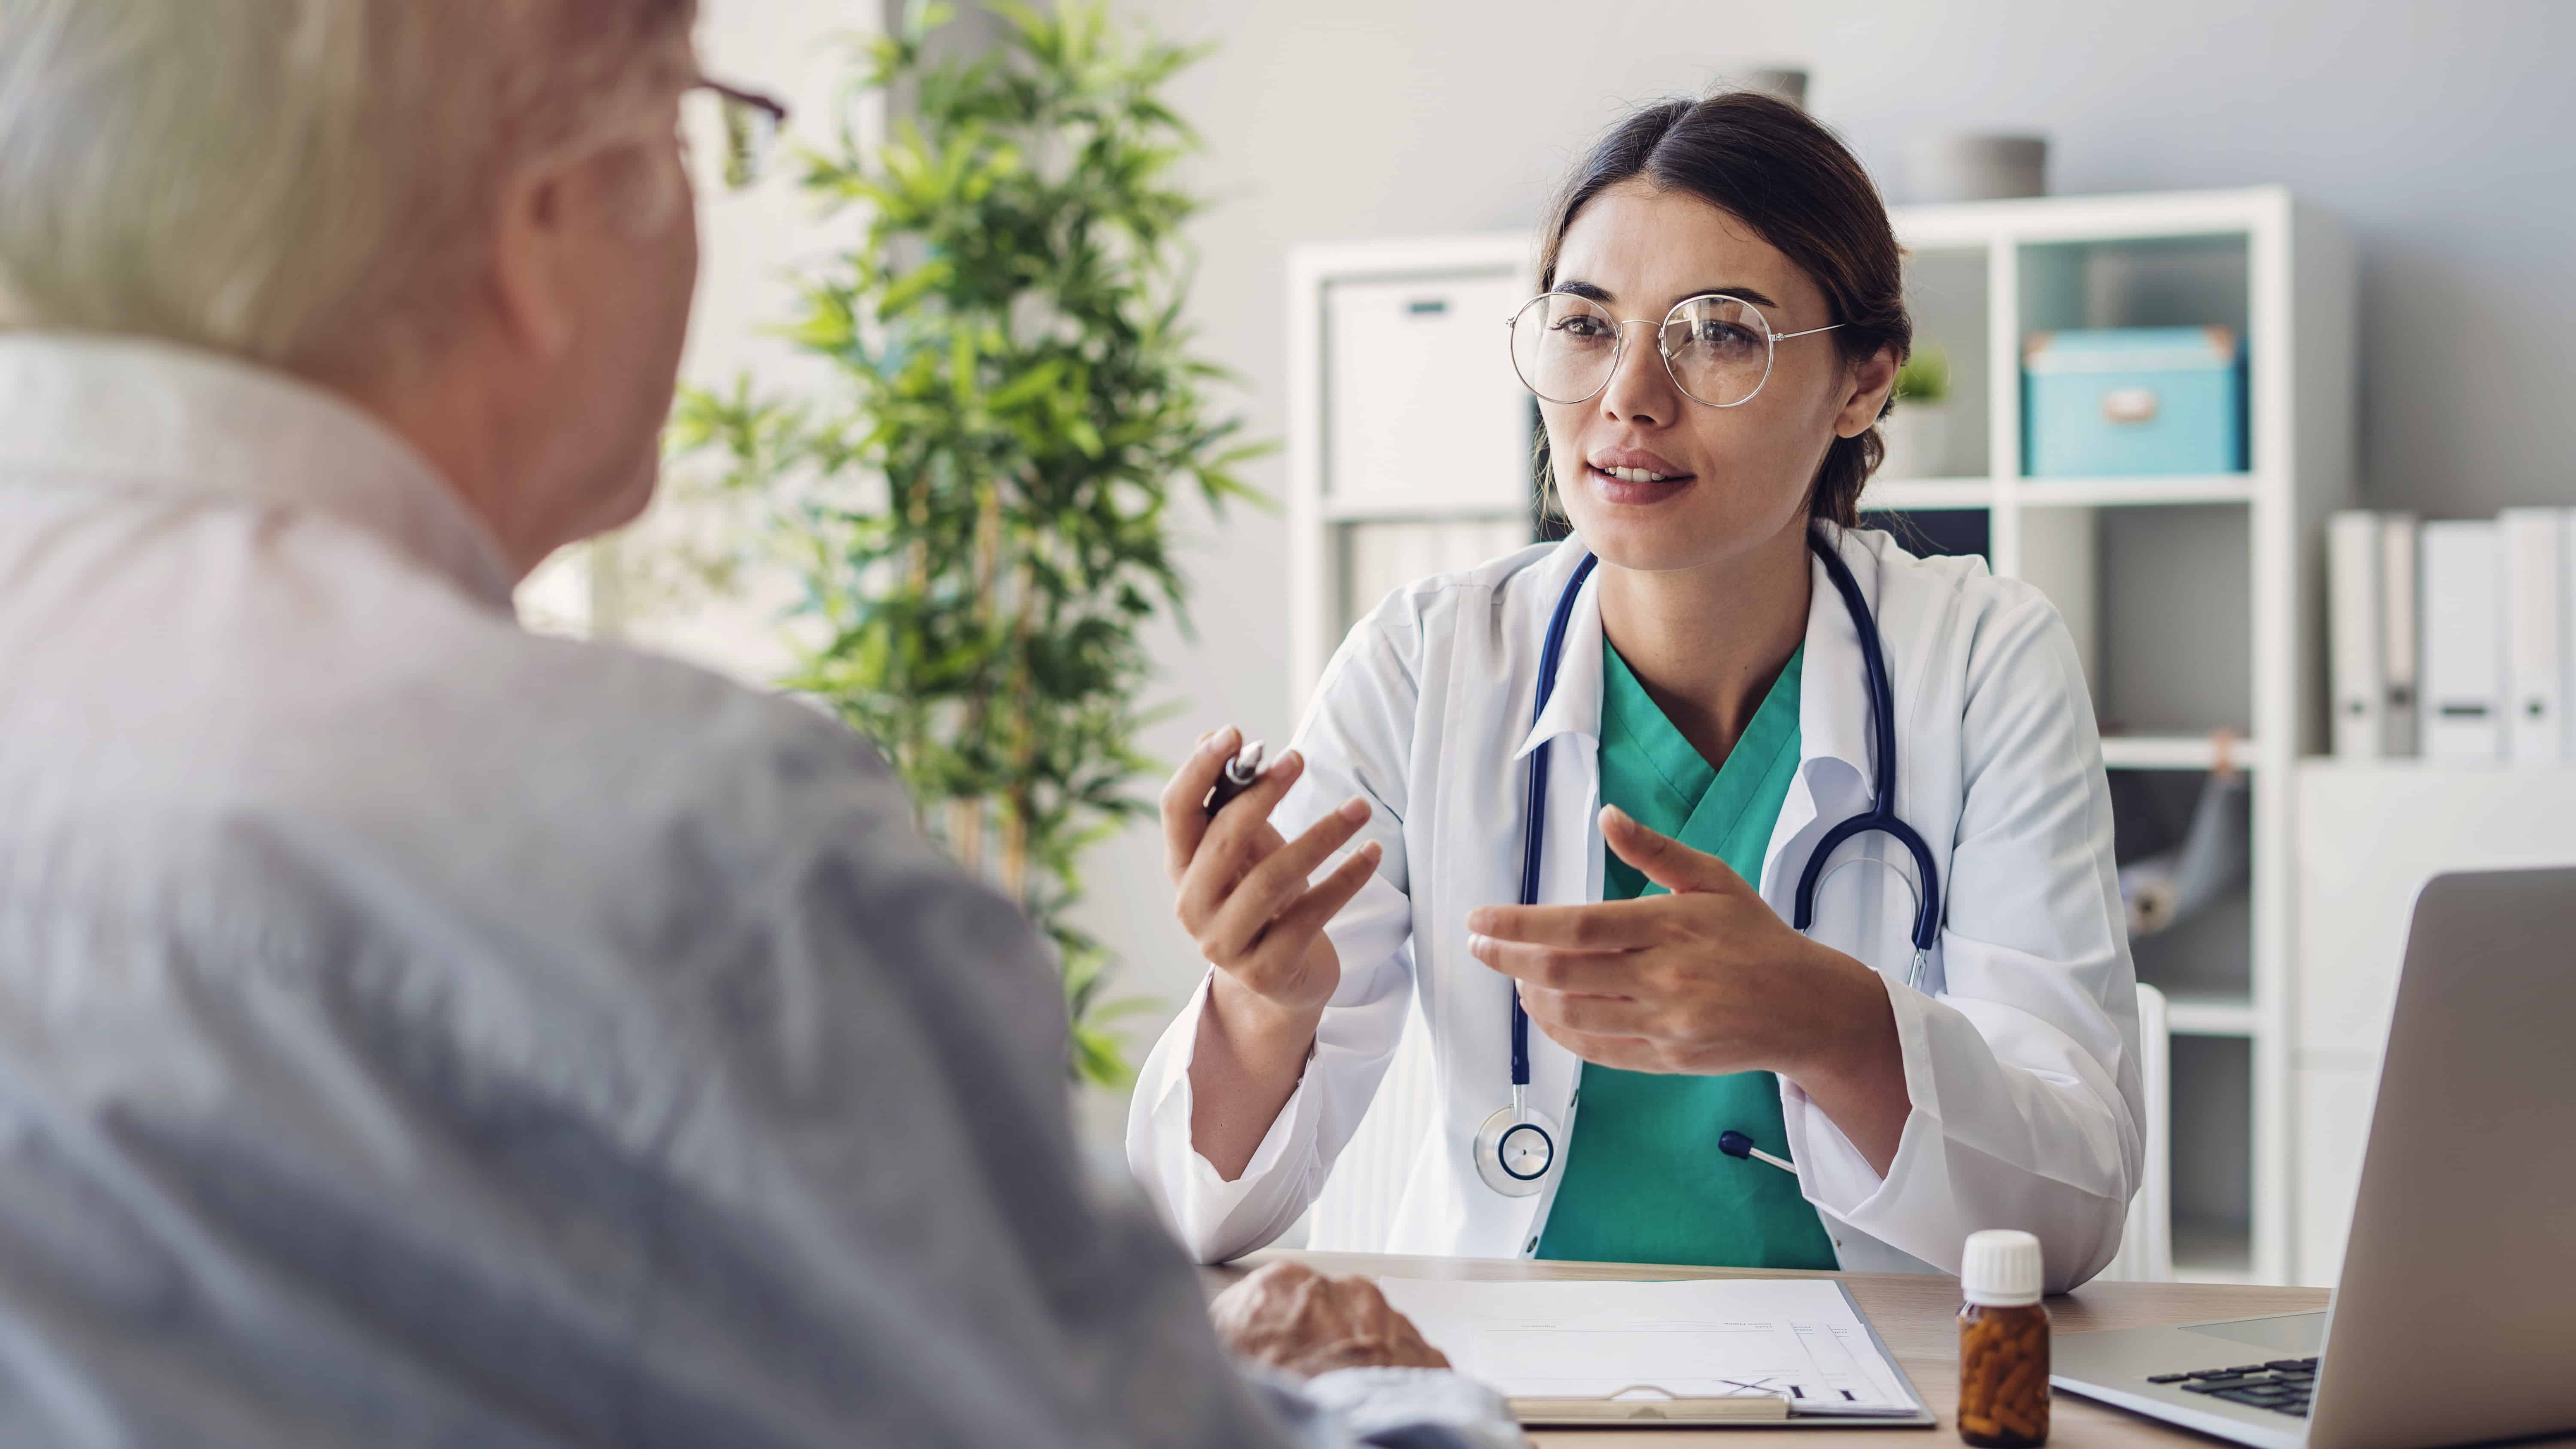 Female doctor speaking to patient in office setting